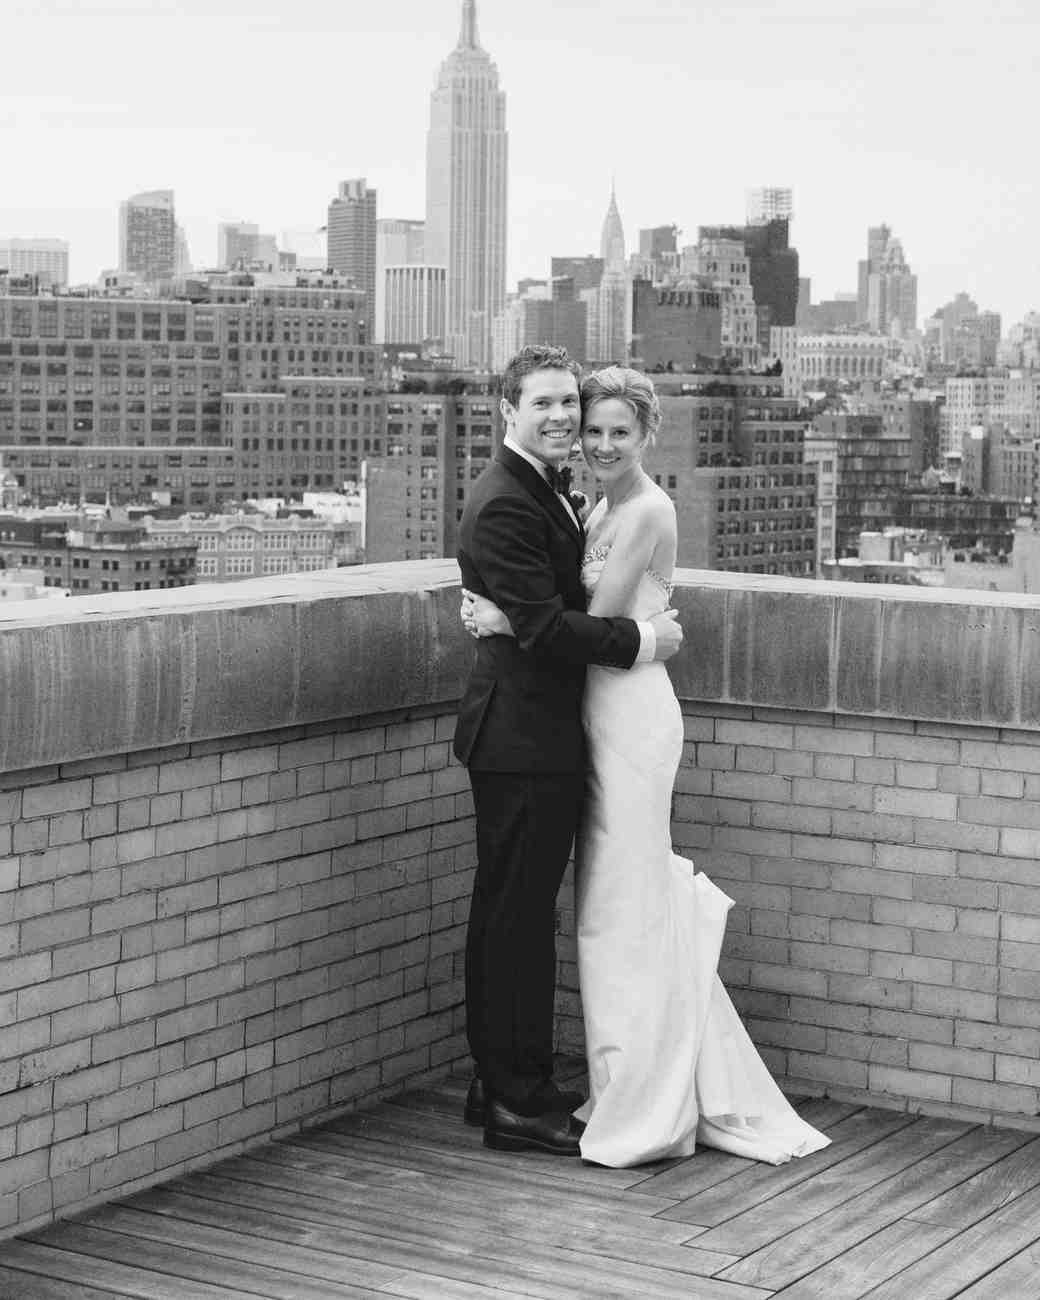 bride-groom-rooftop-blake-chris-nyc-pi-5577-mwd110141.jpg